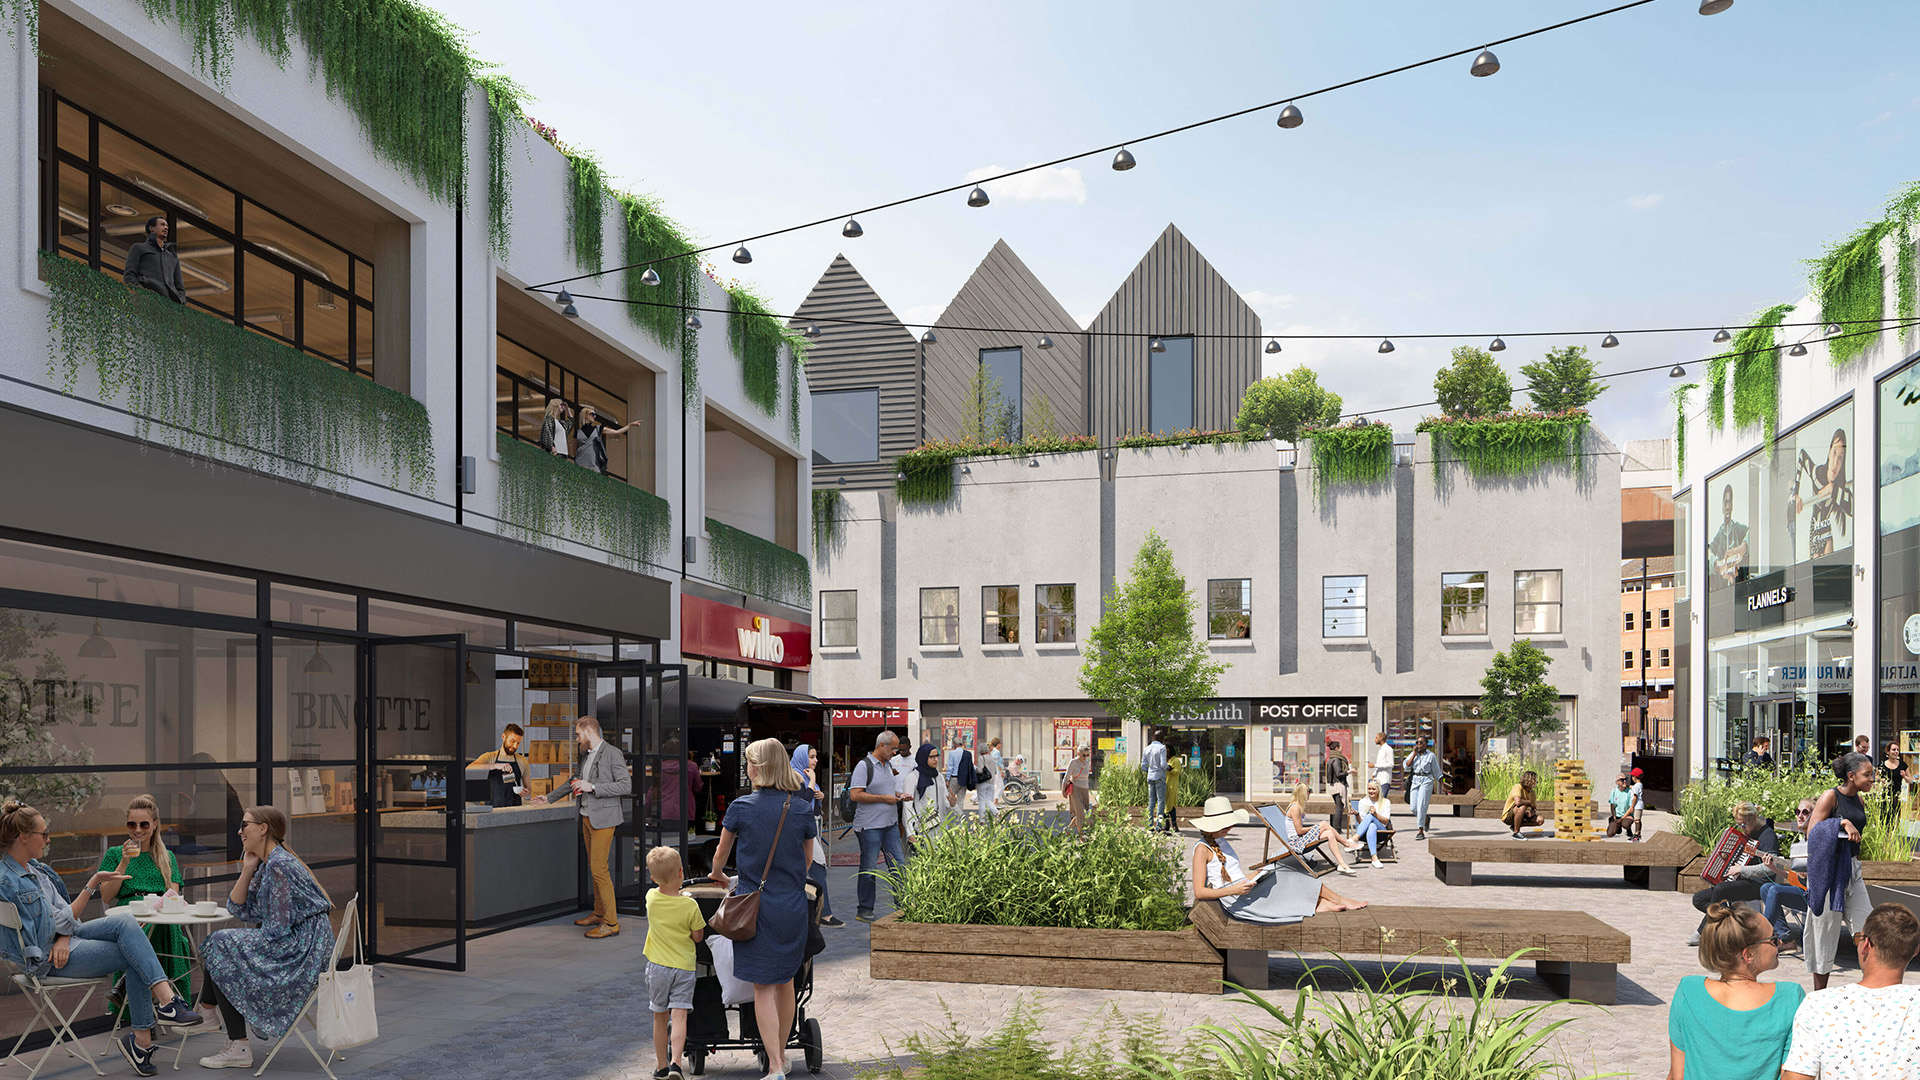 BRUNTWOOD WORKS AND TRAFFORD COUNCIL LAUNCH CONSULTATION AS THEY SHARE TRANSFORMATIONAL PLANS FOR THE STAMFORD QUARTER IN ALTRINCHAM TOWN CENTRE